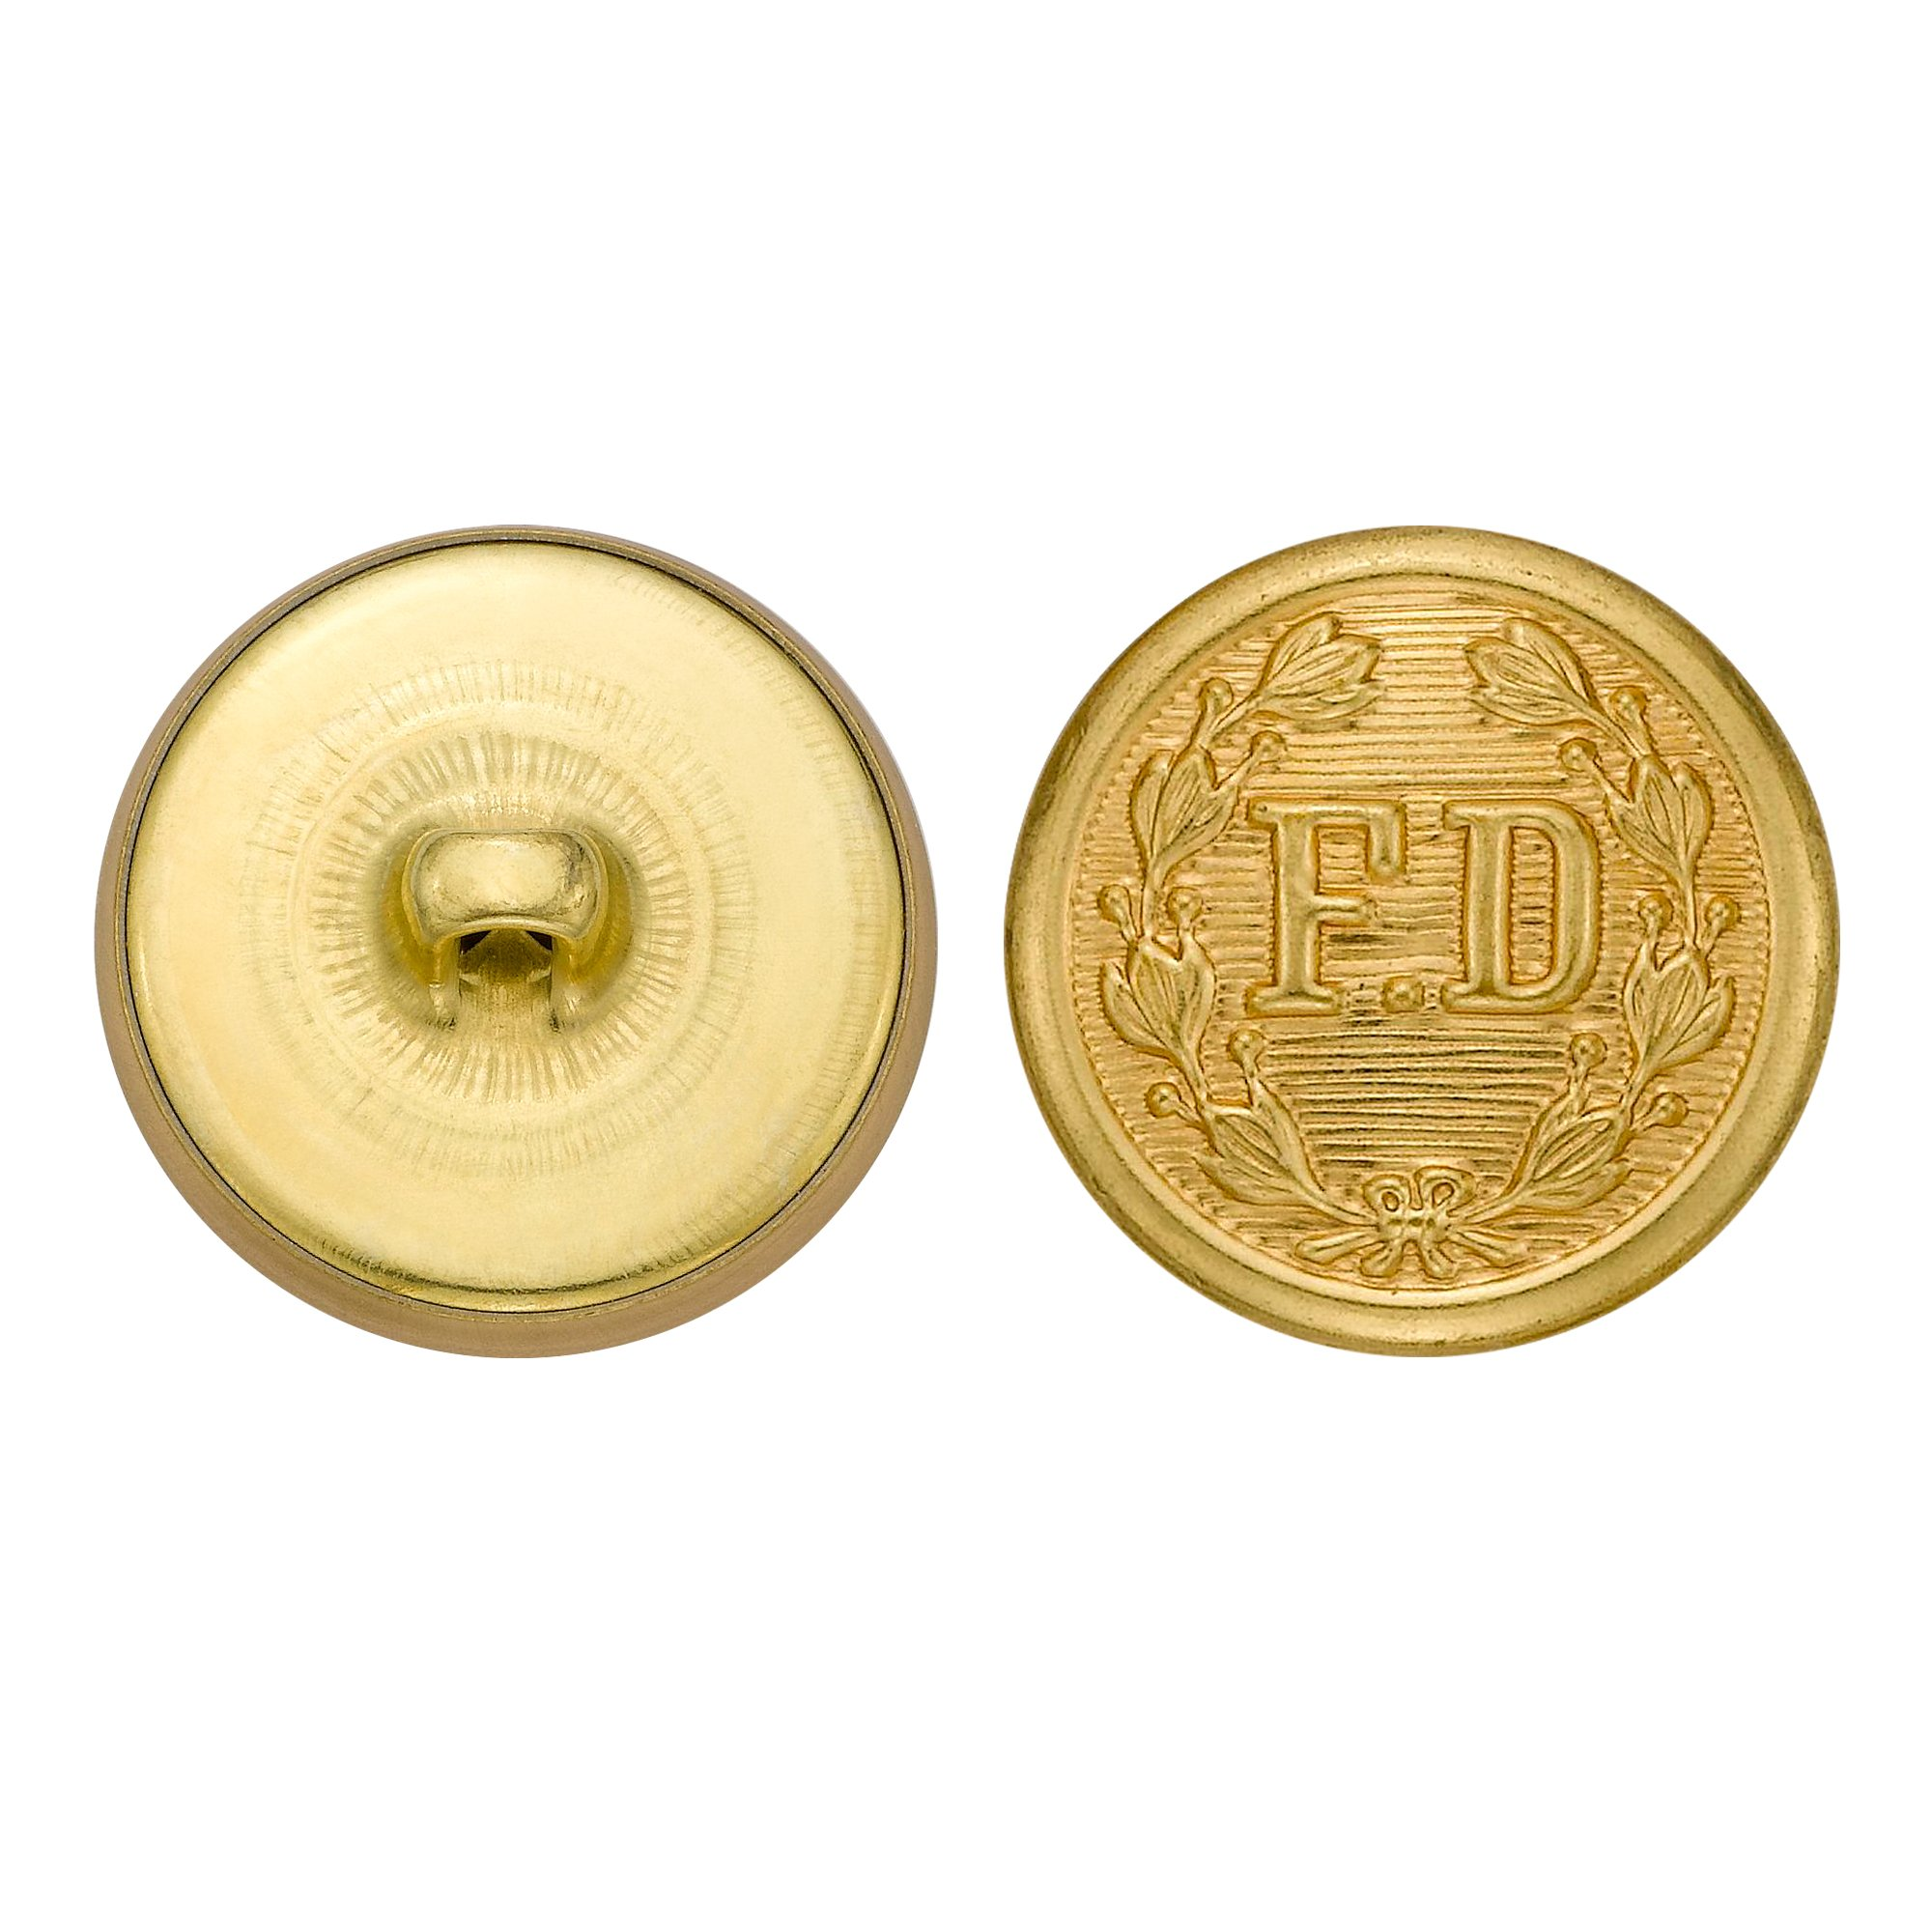 C&C Metal Products 5259 Fire Department Metal Button, Size 36 Ligne, Gold, 36-Pack